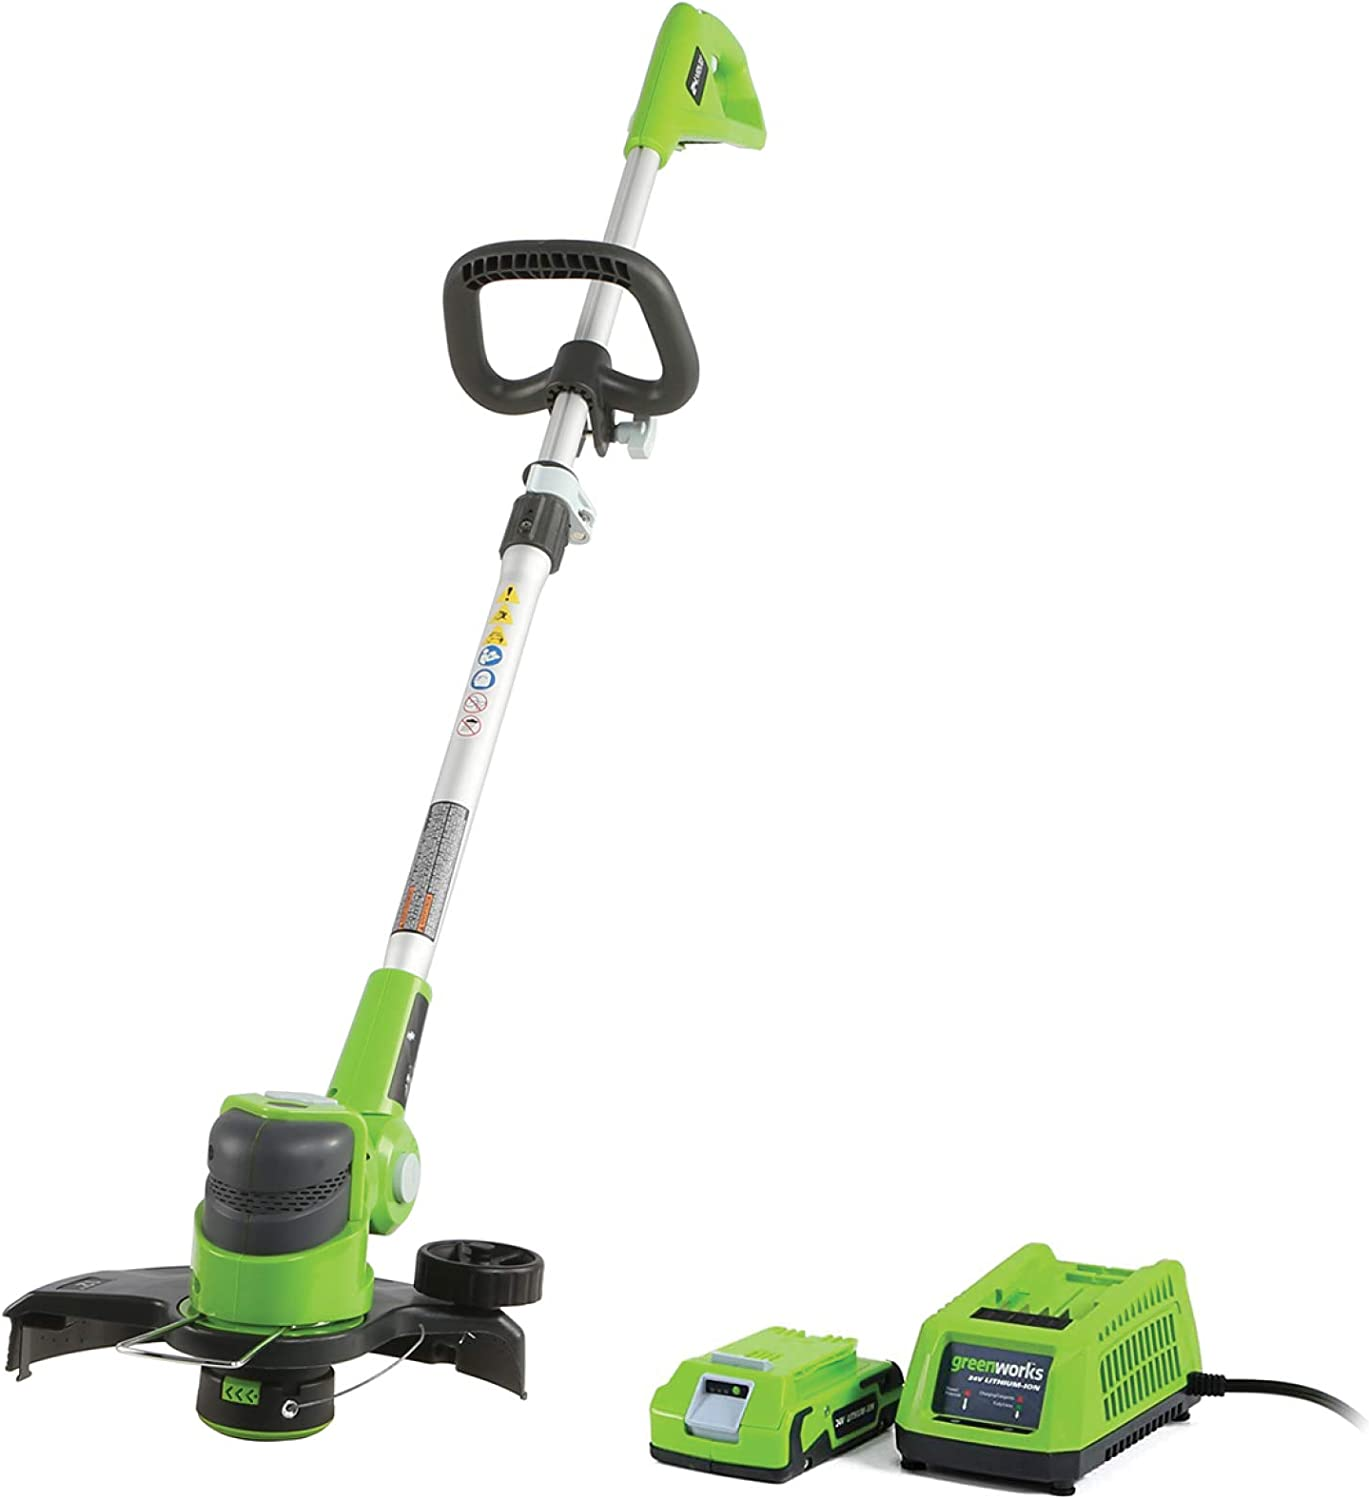 Greenworks 12-Inch 24V Cordless String Trimmer/Edger, 2.0 AH Battery Included 21342 : Garden & Outdoor